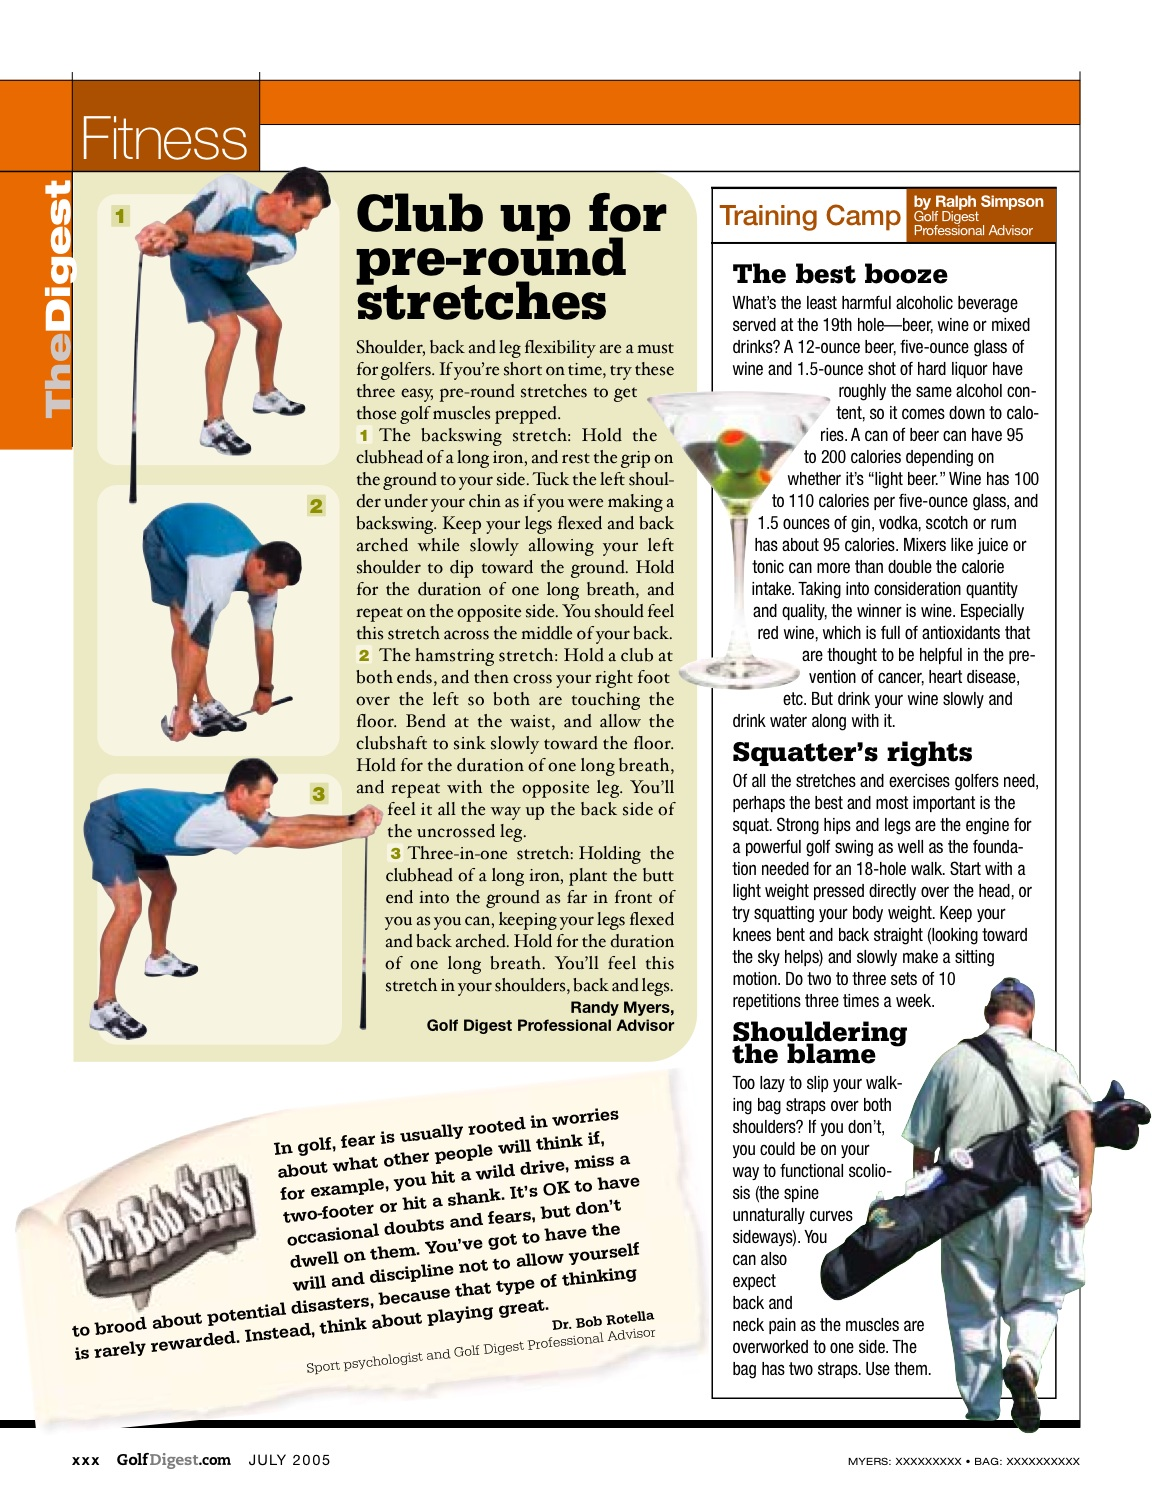 Golf-Digest-Training Camp.jpg